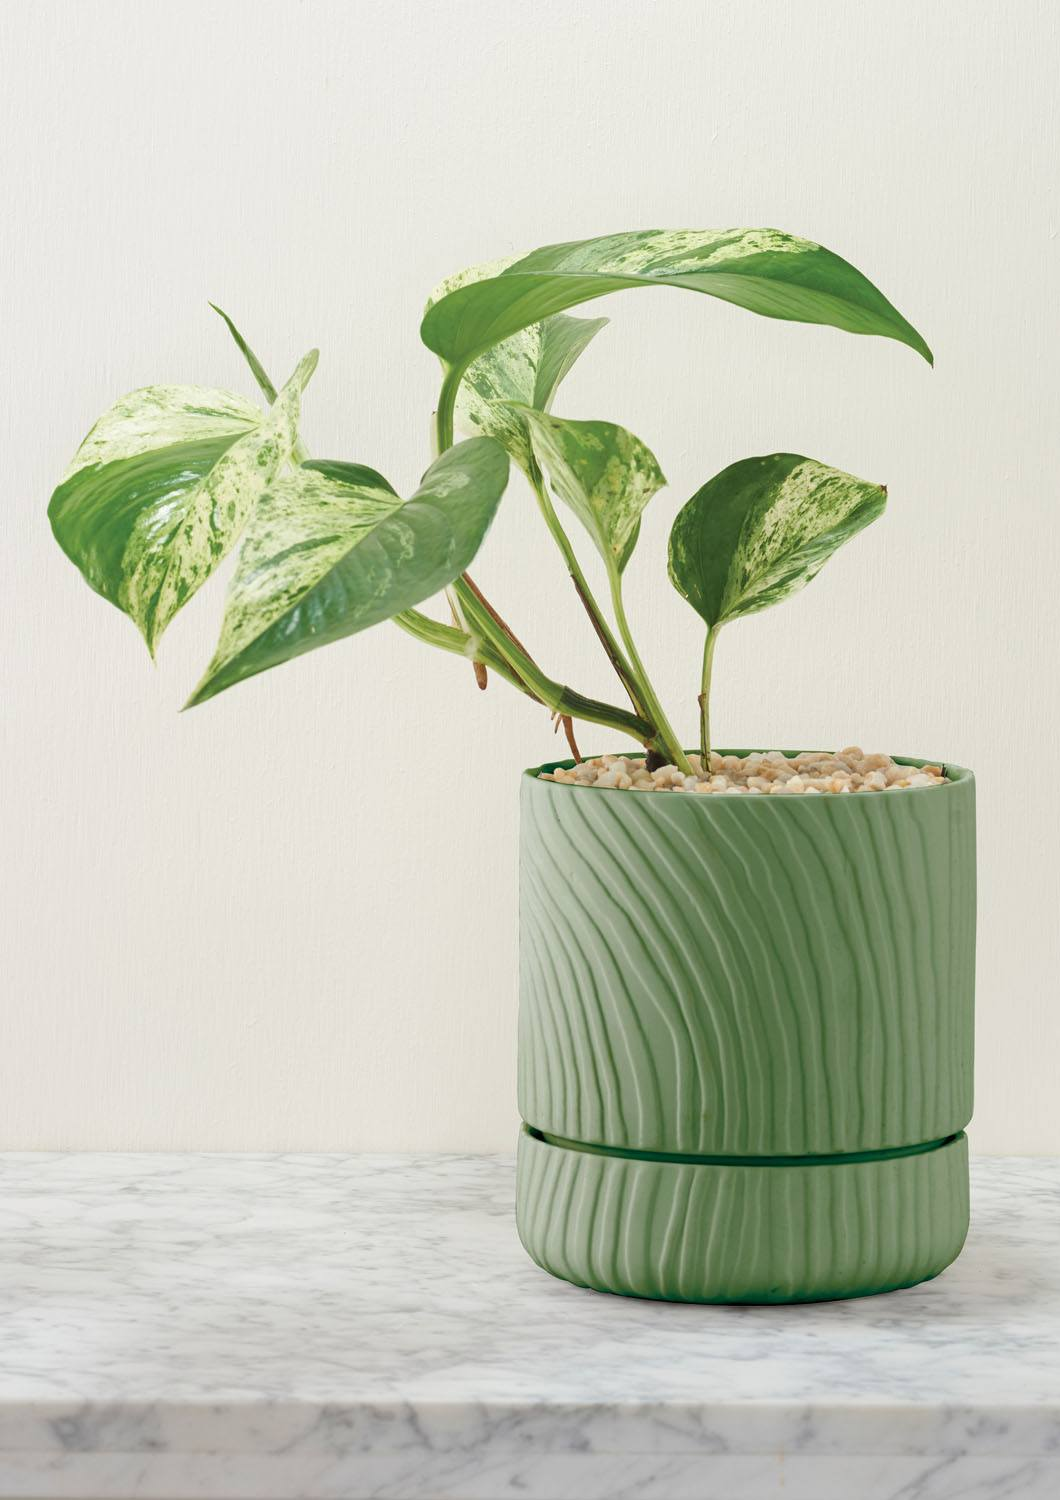 Angus & Celeste Abstract Relief Plant Pot - Brush Line Thin Olive Green Plant Pot Styled